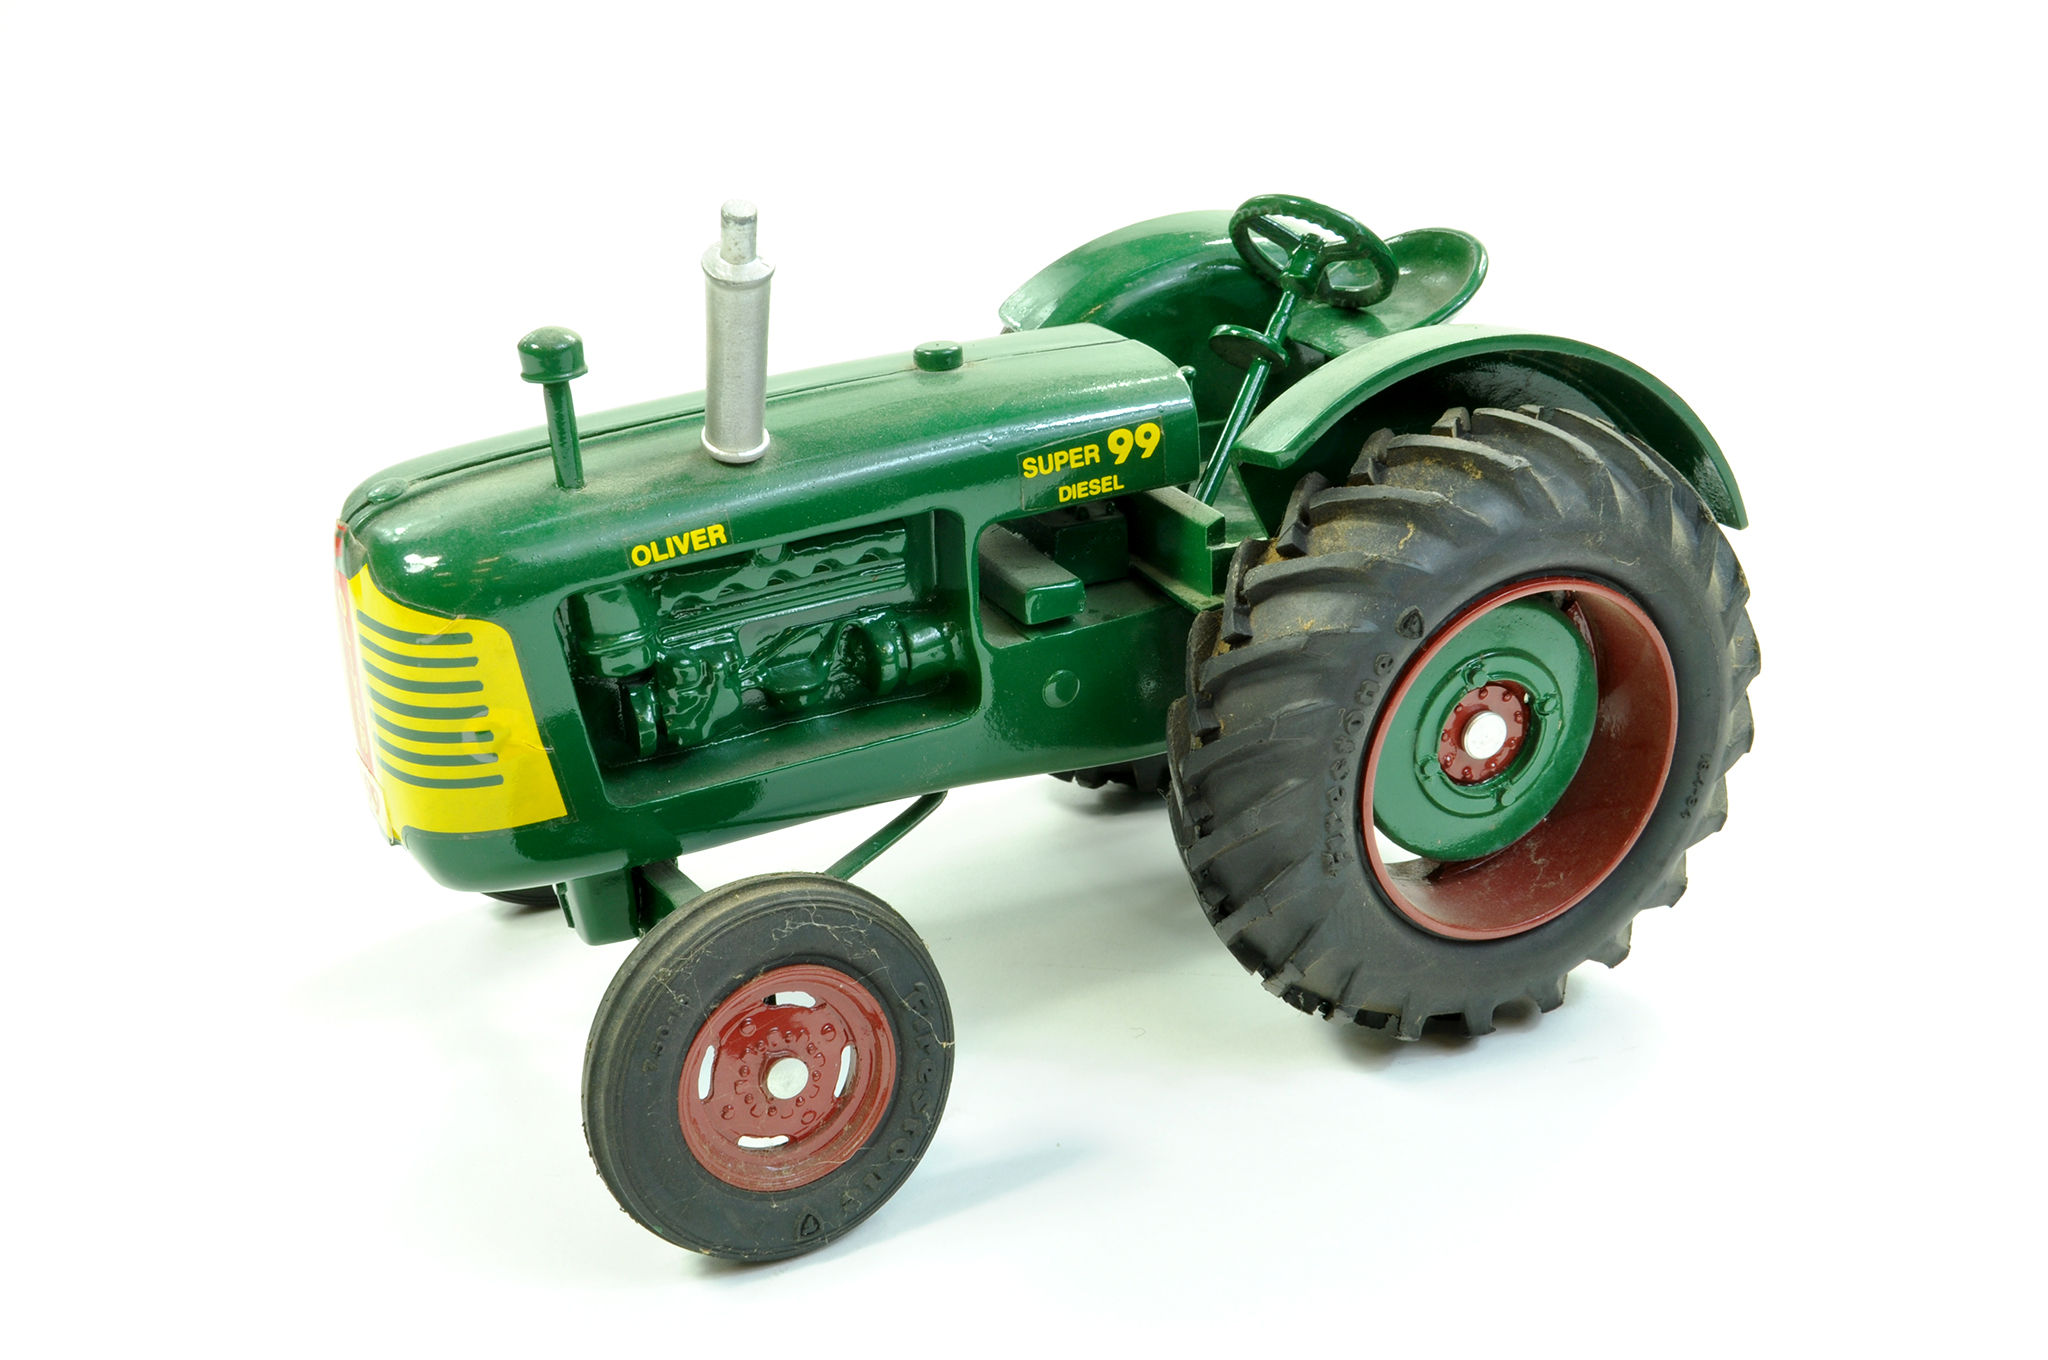 Lot 6 - NB&K 1/16 Diecast (Heavy) Oliver Super 99 Diesel Tractor. Produced for the 1988 Michigan Toy Show,